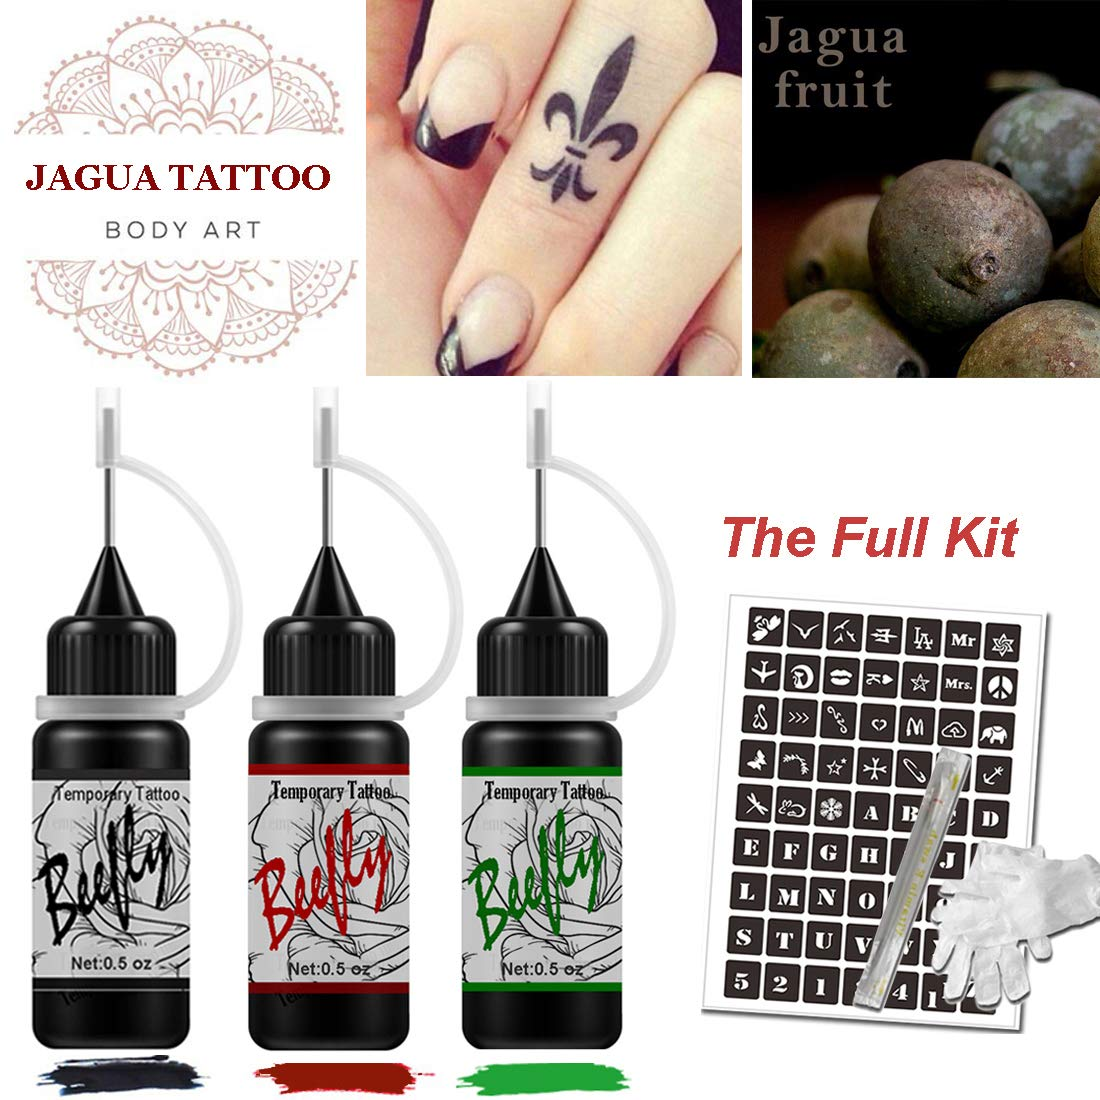 Beefly Jagua Semi-permanent Tattoo Kit for Women (Organic Jagua Fruit Based) with Special Design Tattoo Stencils,DIY Tattoos Full Kit for Party, 3 Bottles (Black/Red/Green) ... by Beefly